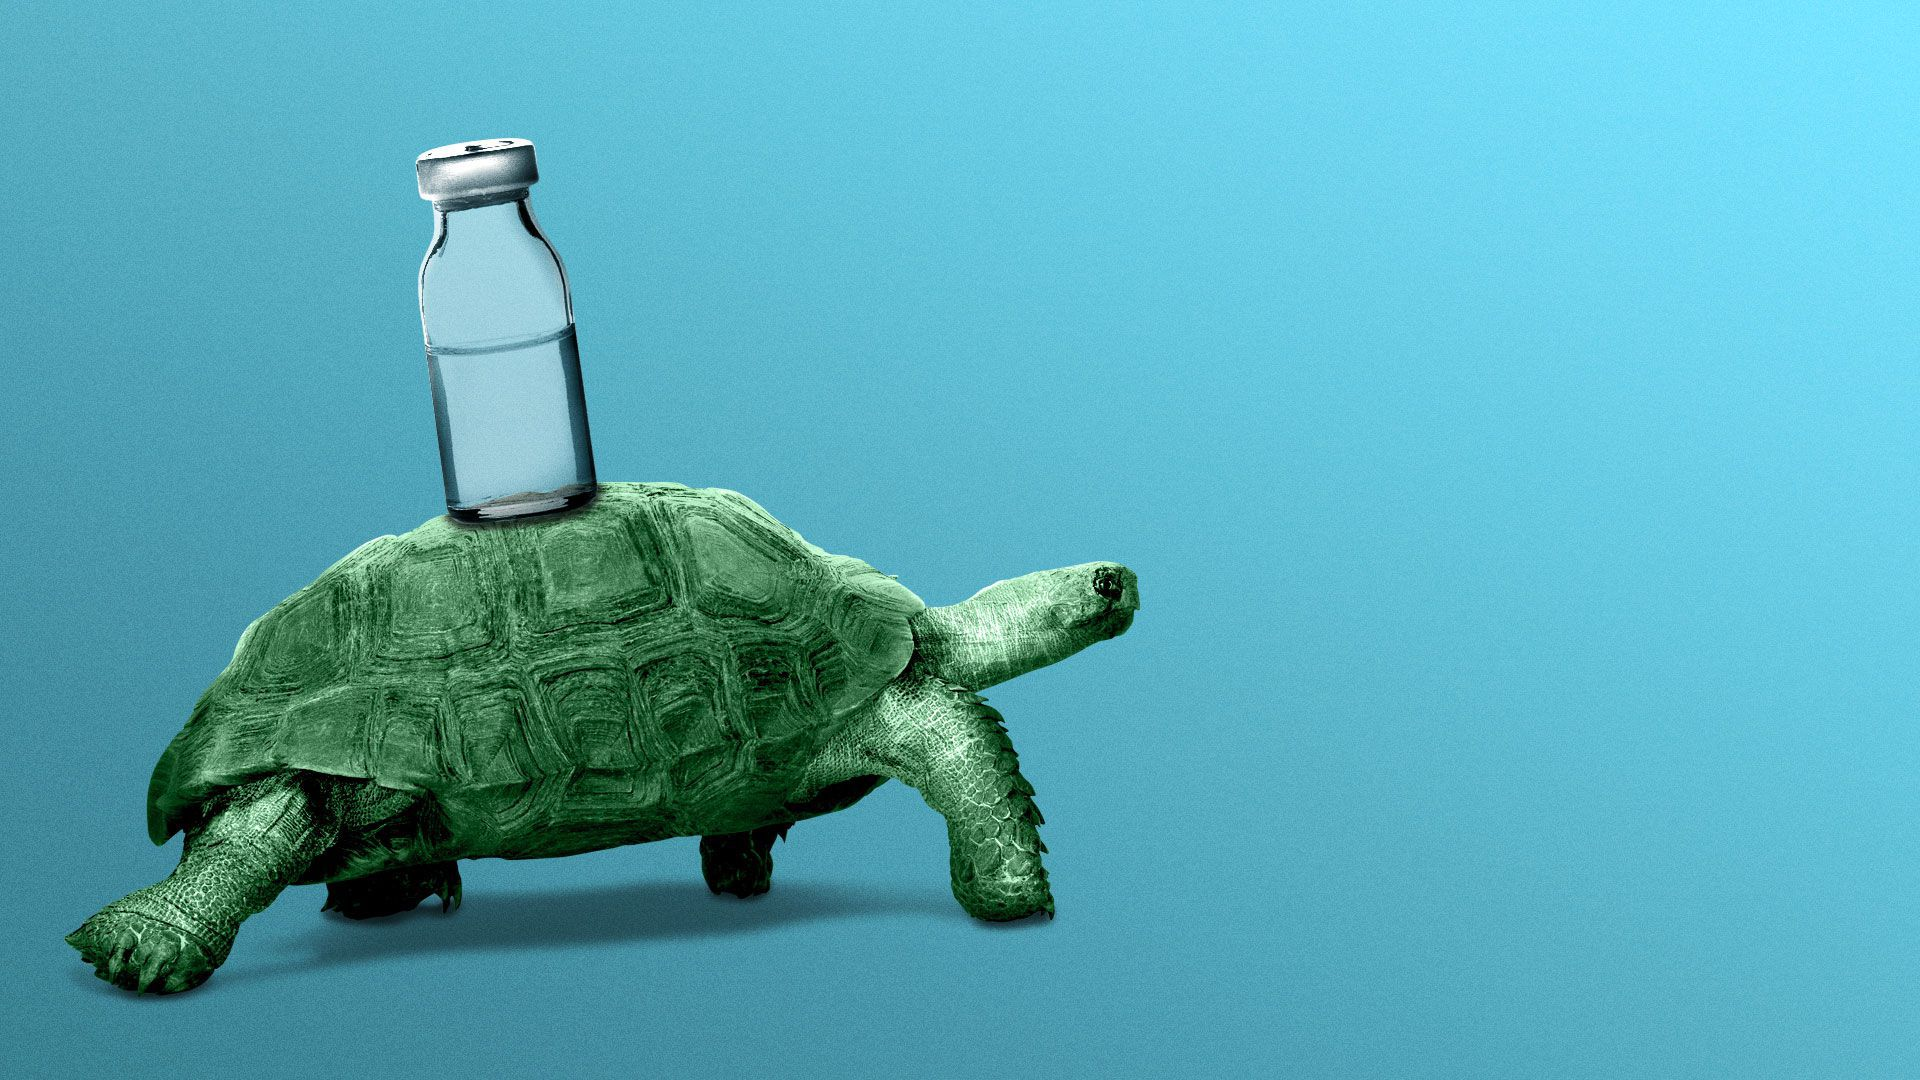 Illustration of a turtle carrying a vial of liquid